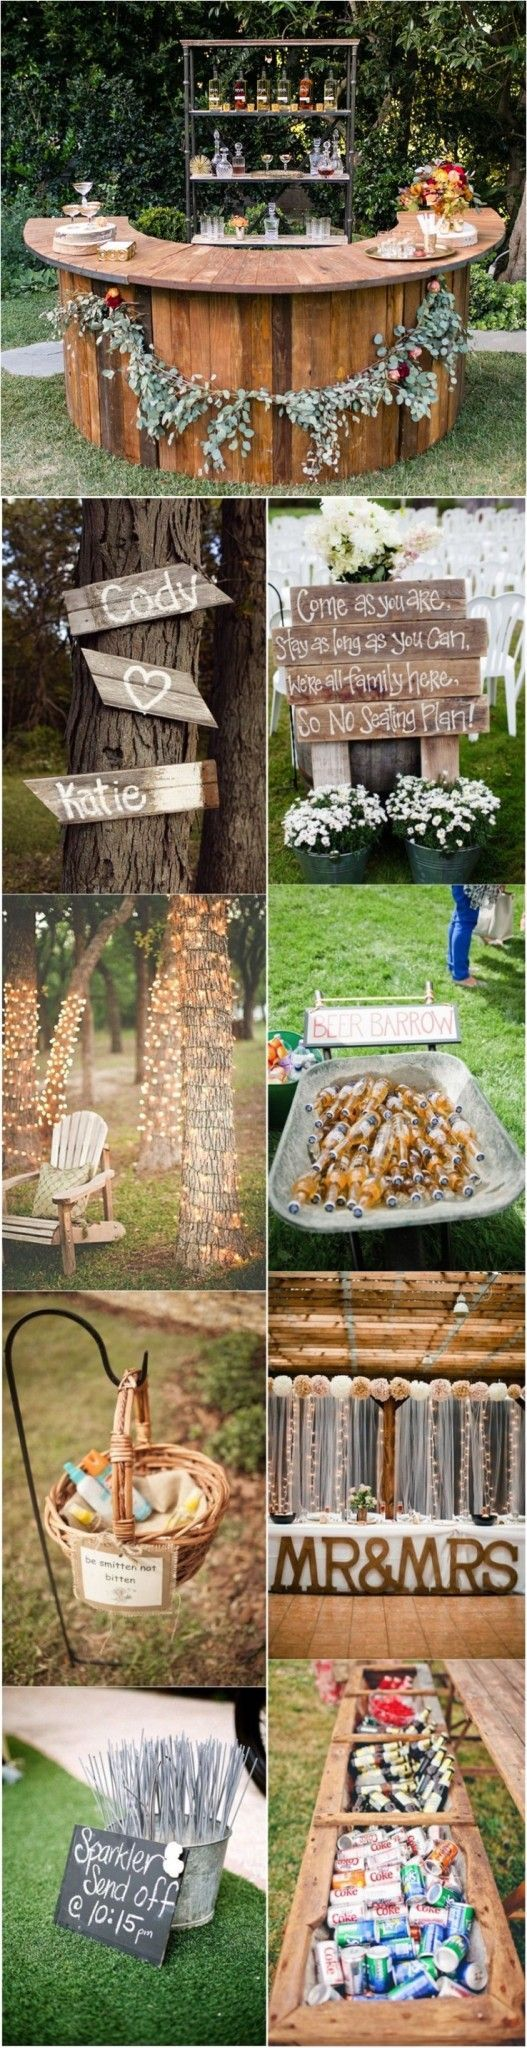 best 25 outdoor weddings ideas on pinterest outdoor rustic